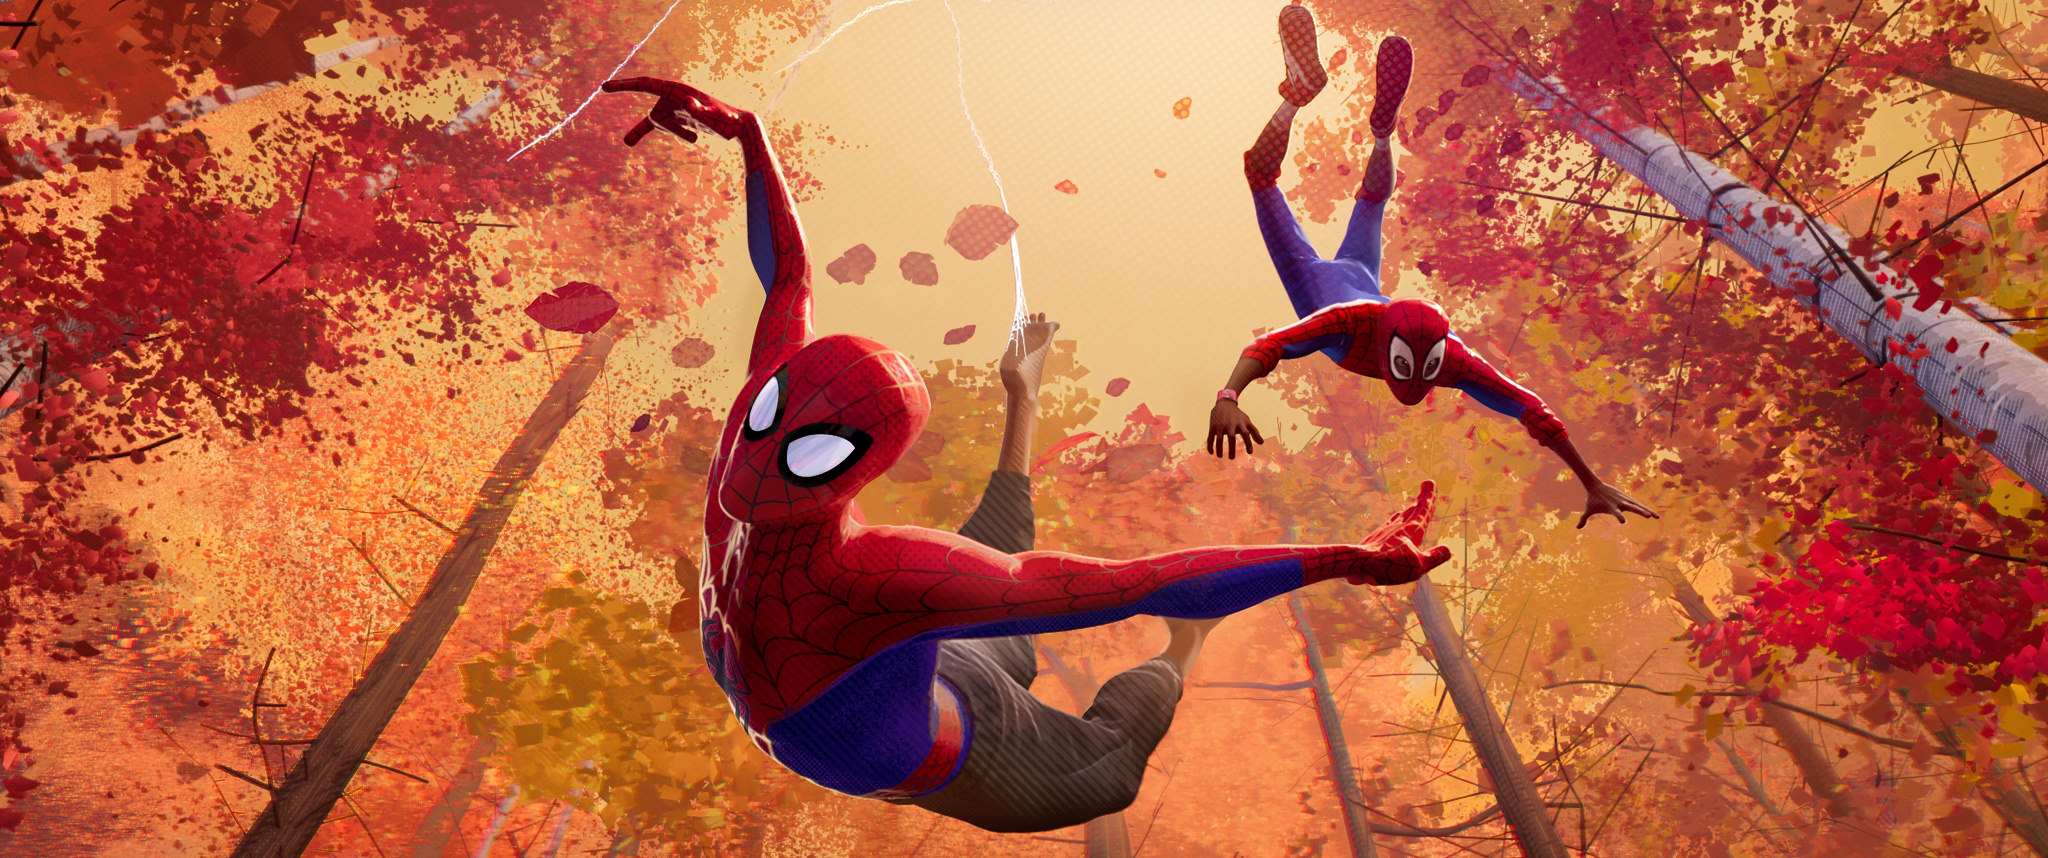 For the first time Sony Pictures is opening up a different Spider-Man universe - known as the Spider-Verse - where more than one person, or cartoon pig, c